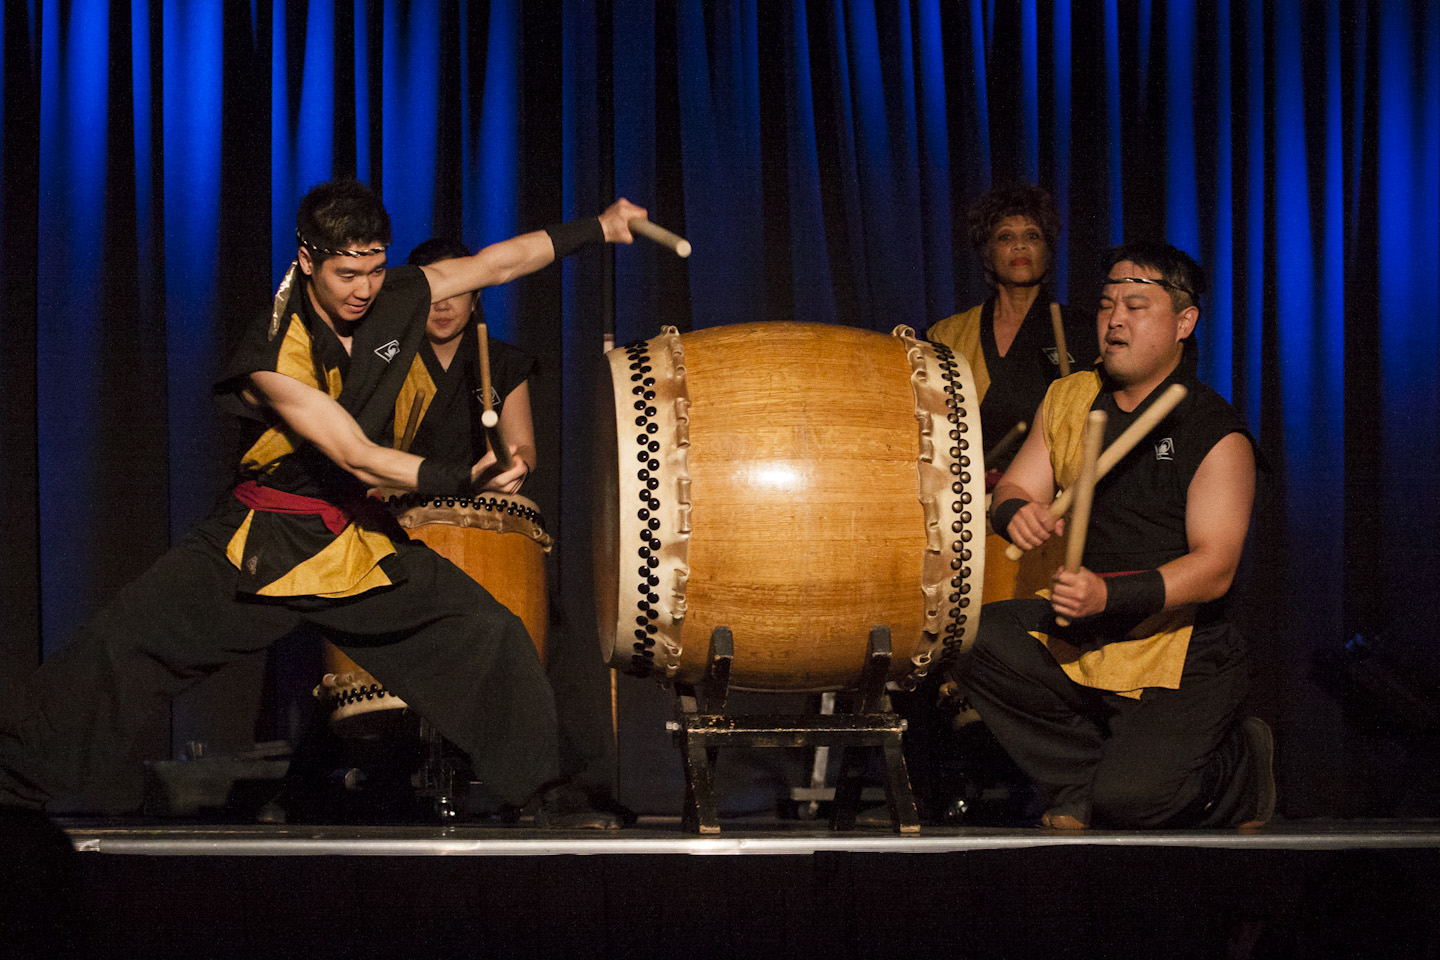 Taiko performers, Adam Edgerly close out final conference session